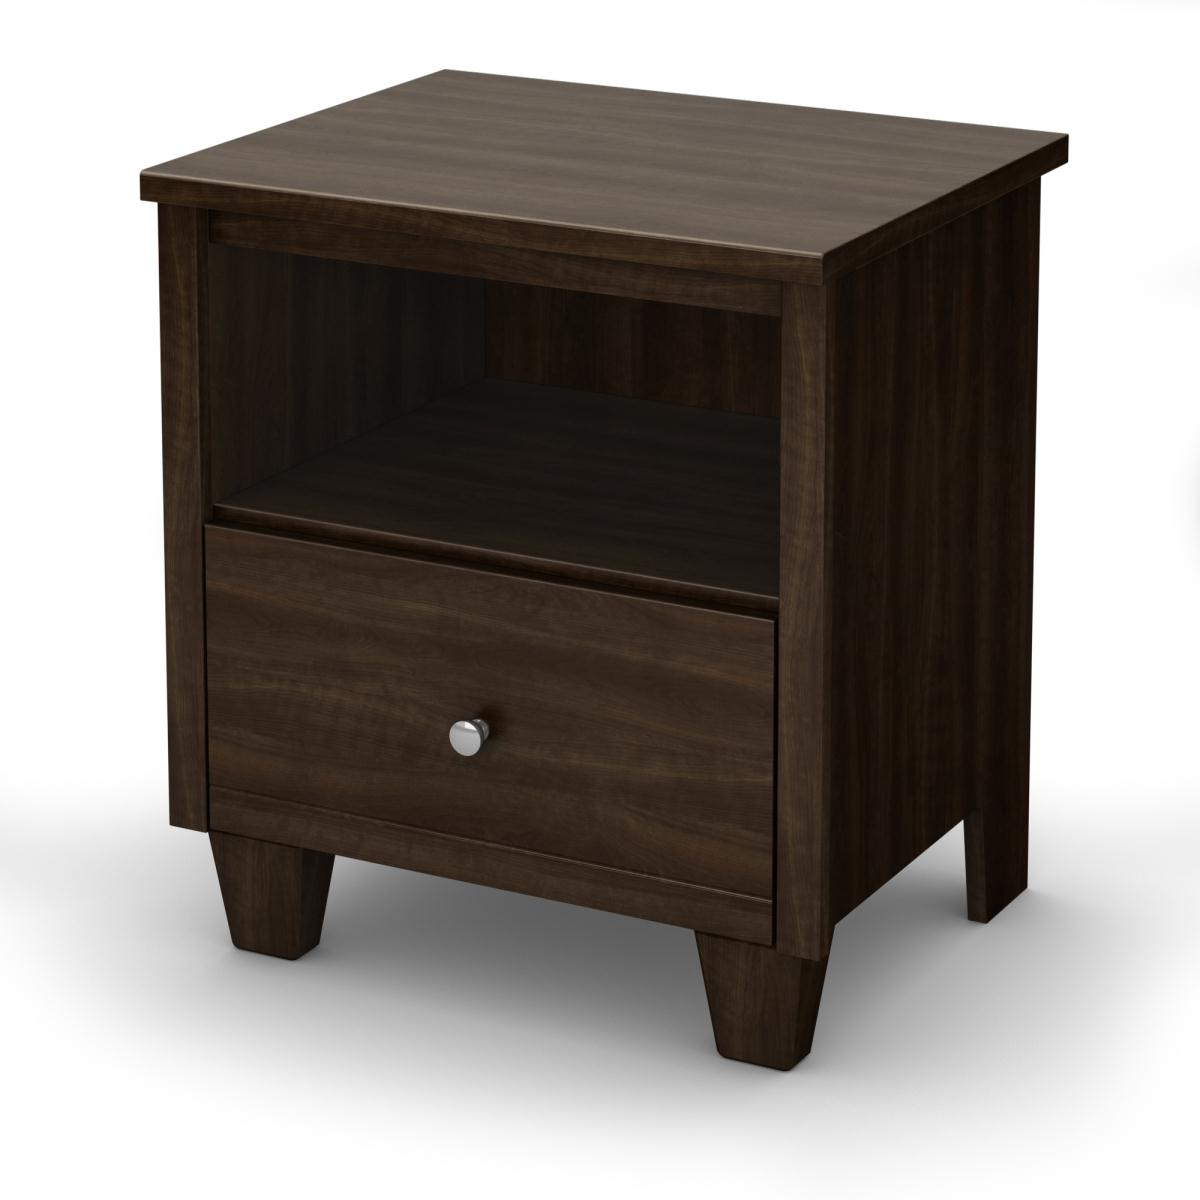 South Shore Clever Room Night Stand - Mocha